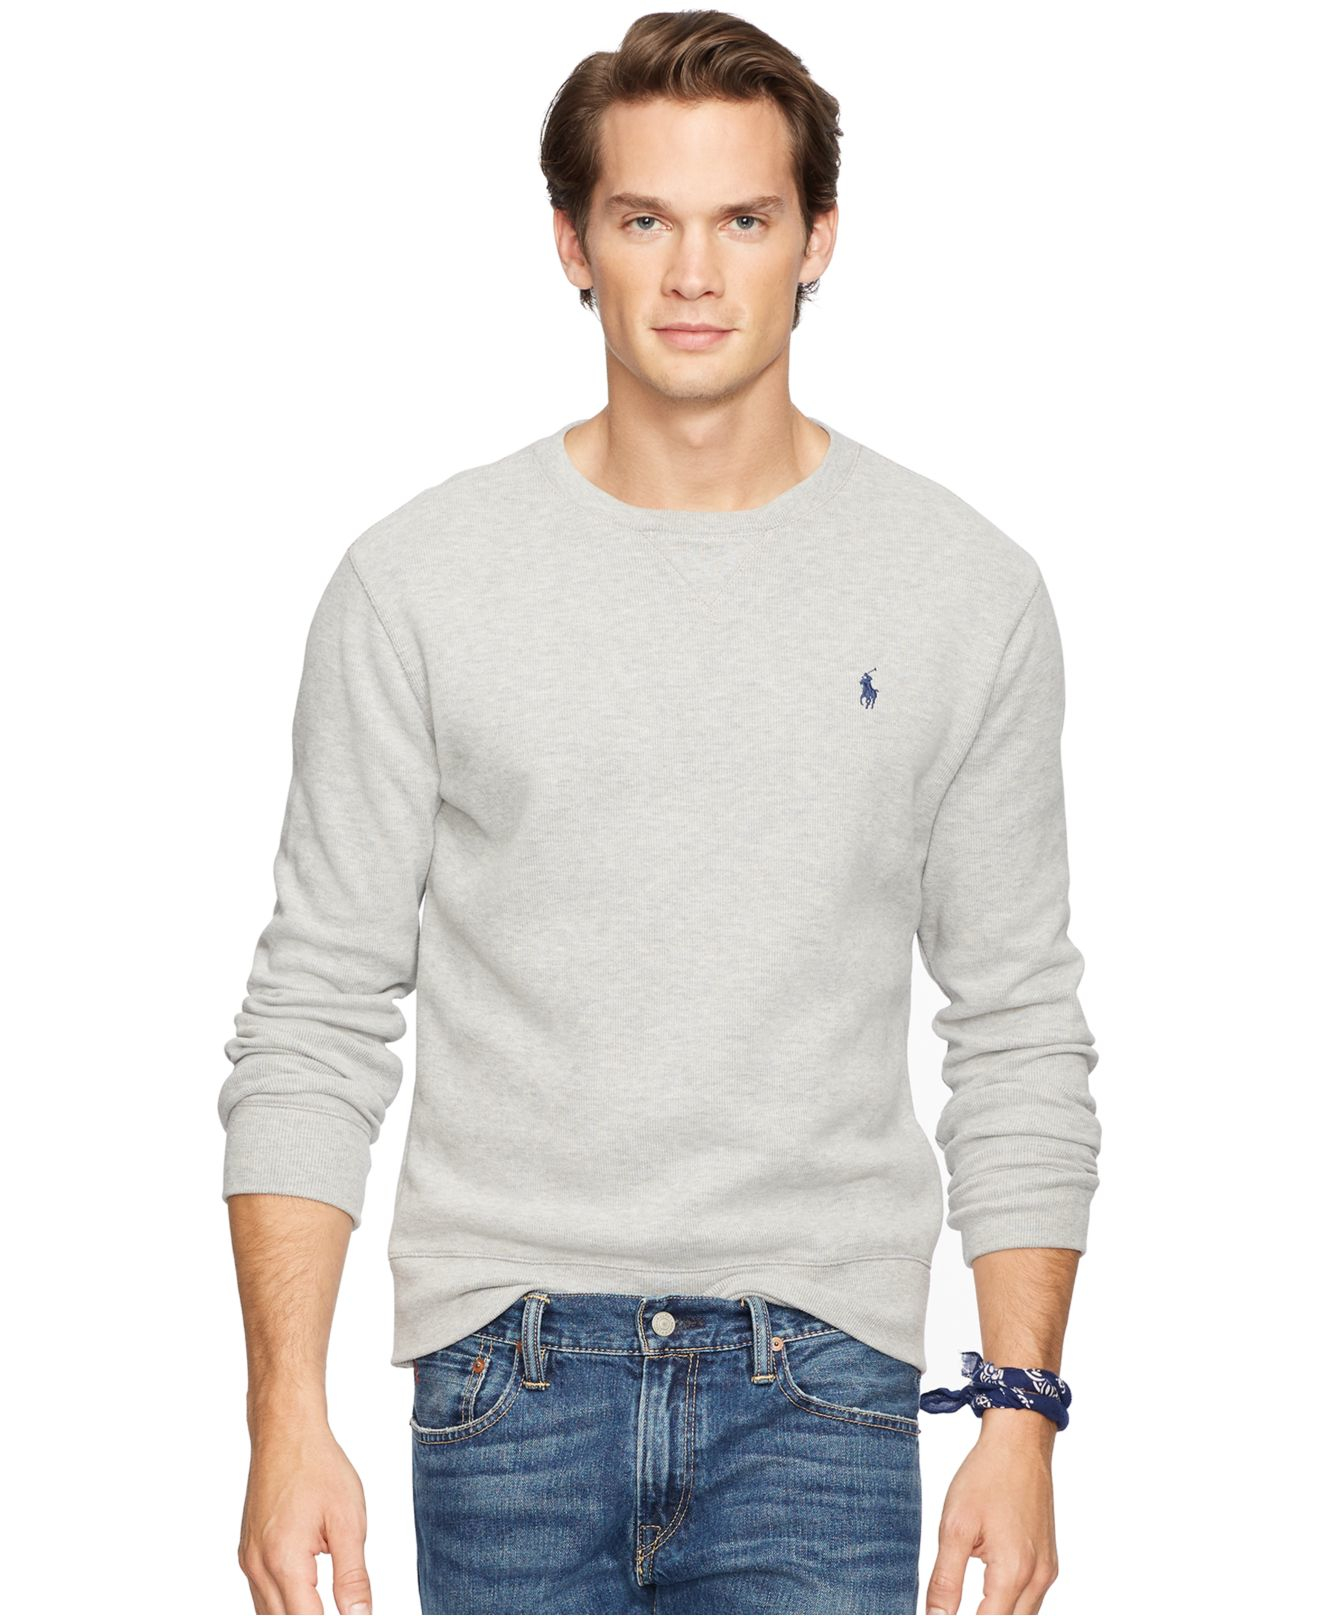 polo ralph lauren performance french rib pullover in gray for men. Black Bedroom Furniture Sets. Home Design Ideas